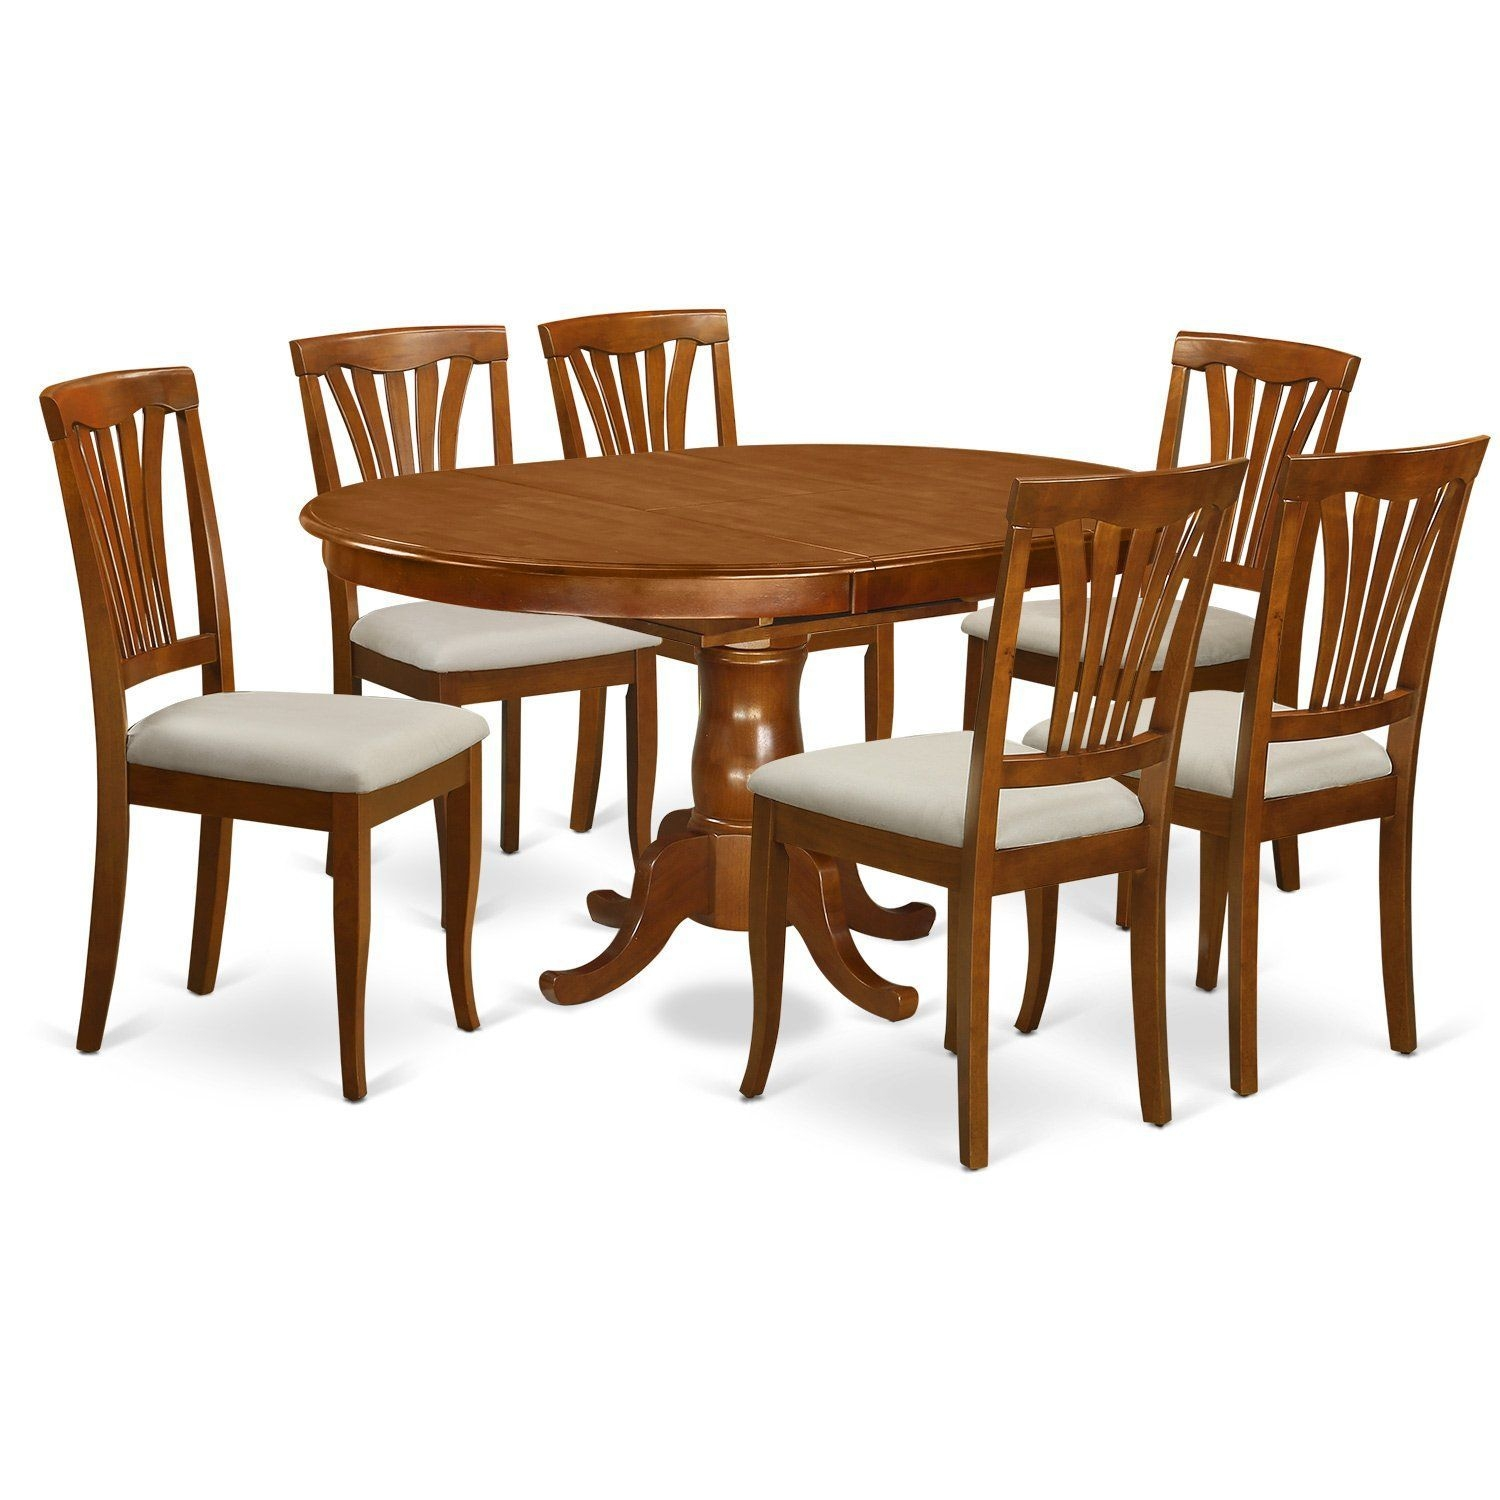 East West Furniture Poav7Sbrc 7 Piece Kitchen Dinette Table And 6 Chairs  Details Can Be